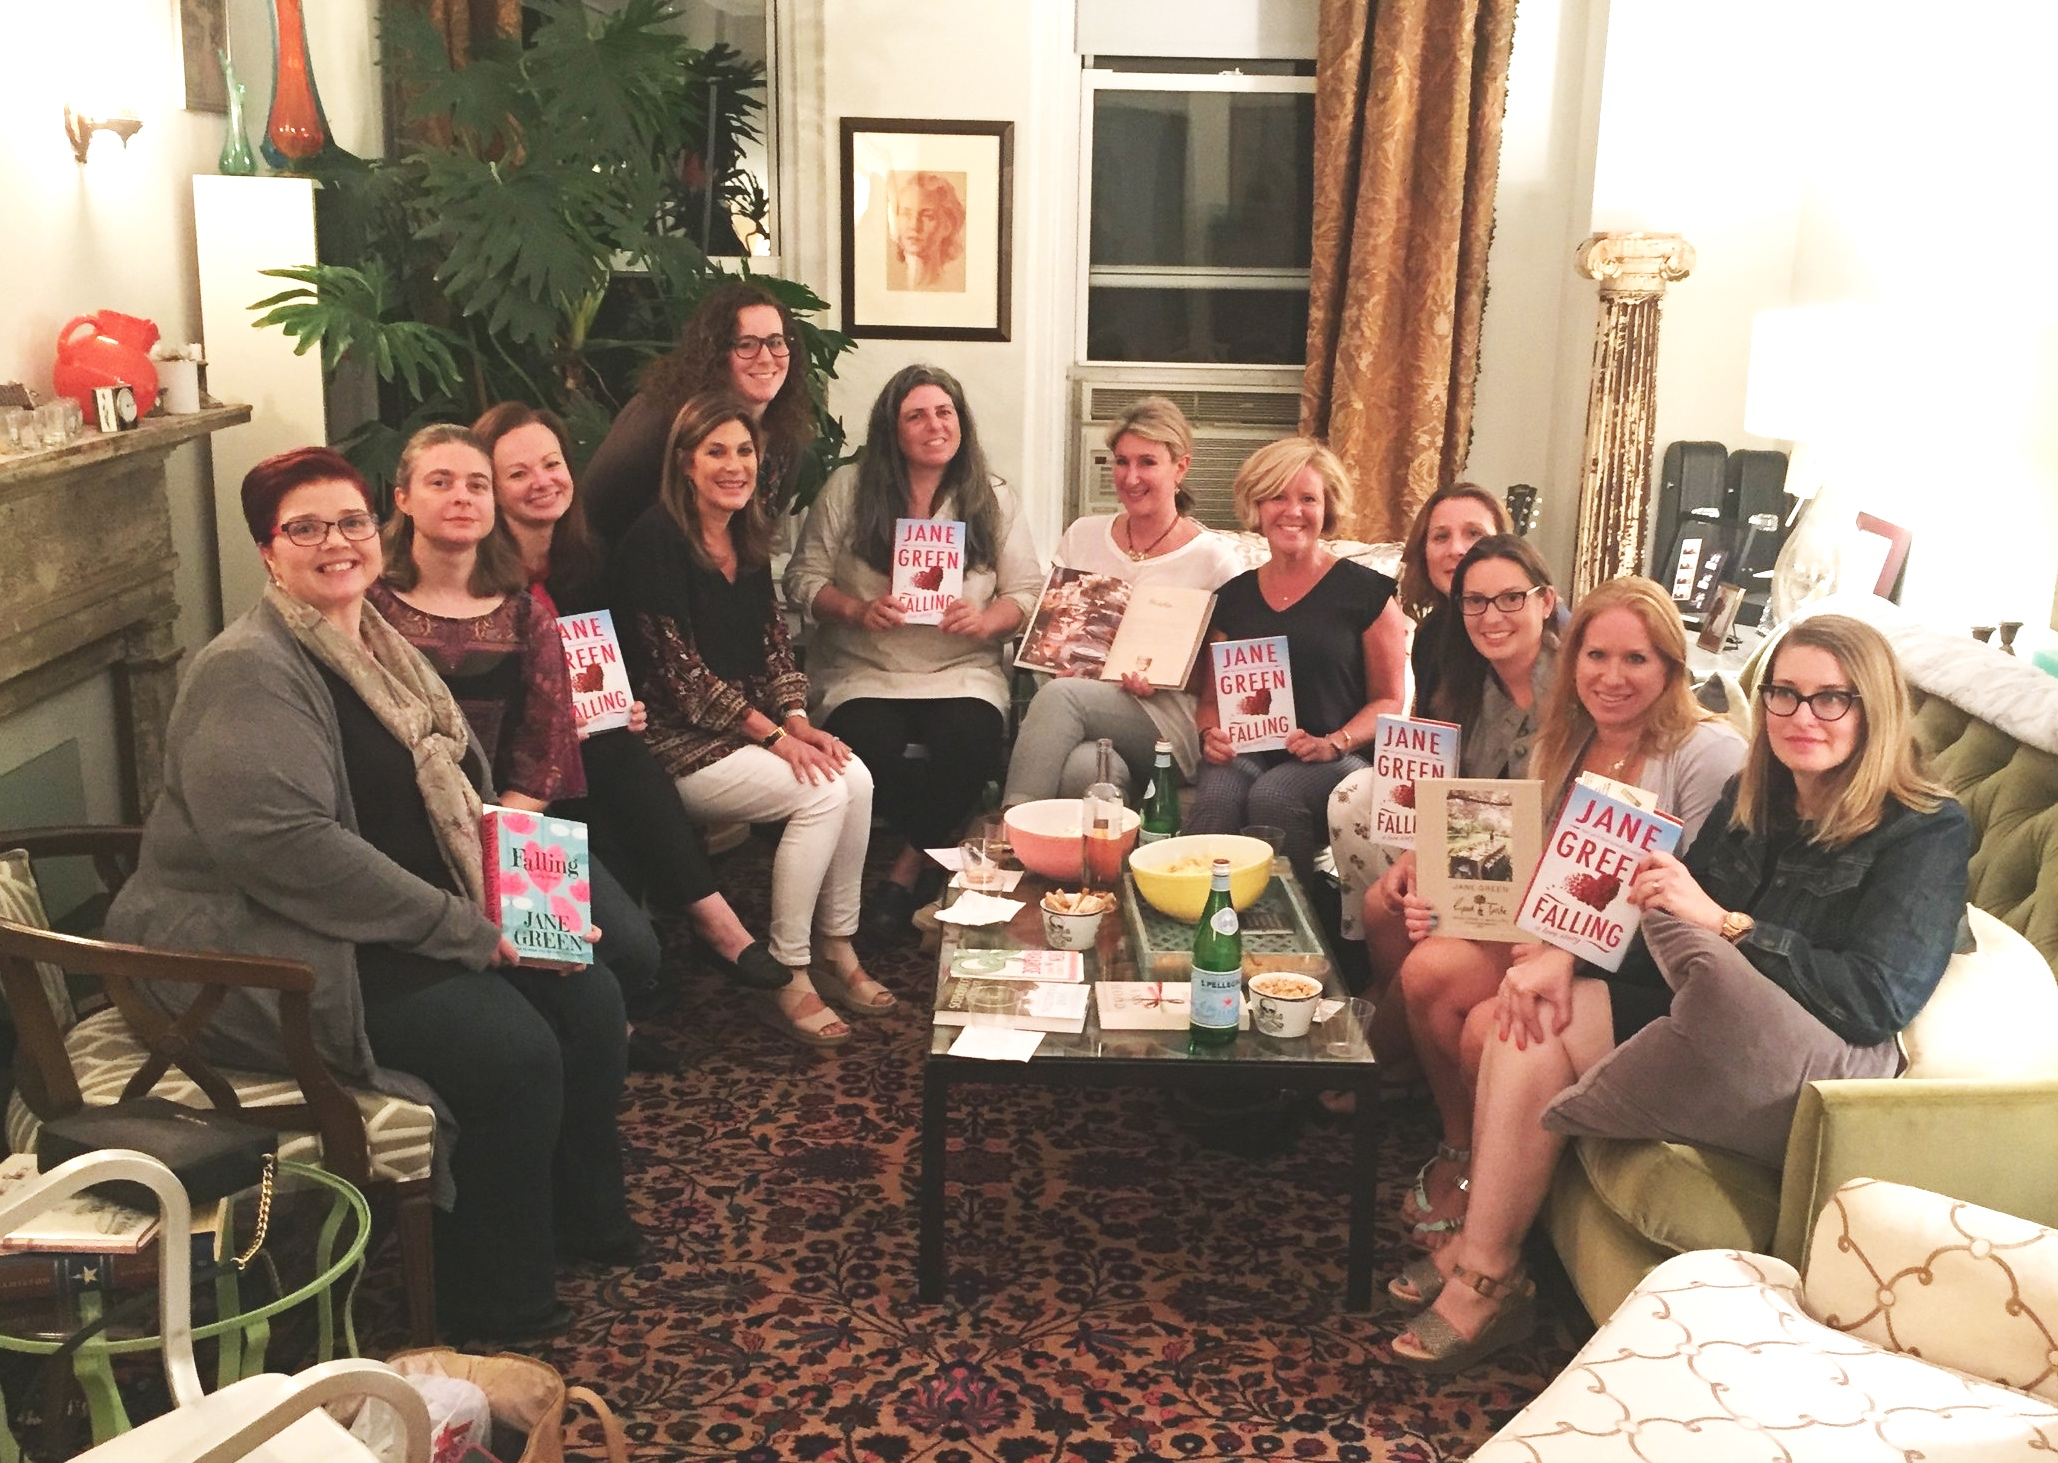 Novelist Jane Green with a group of fans